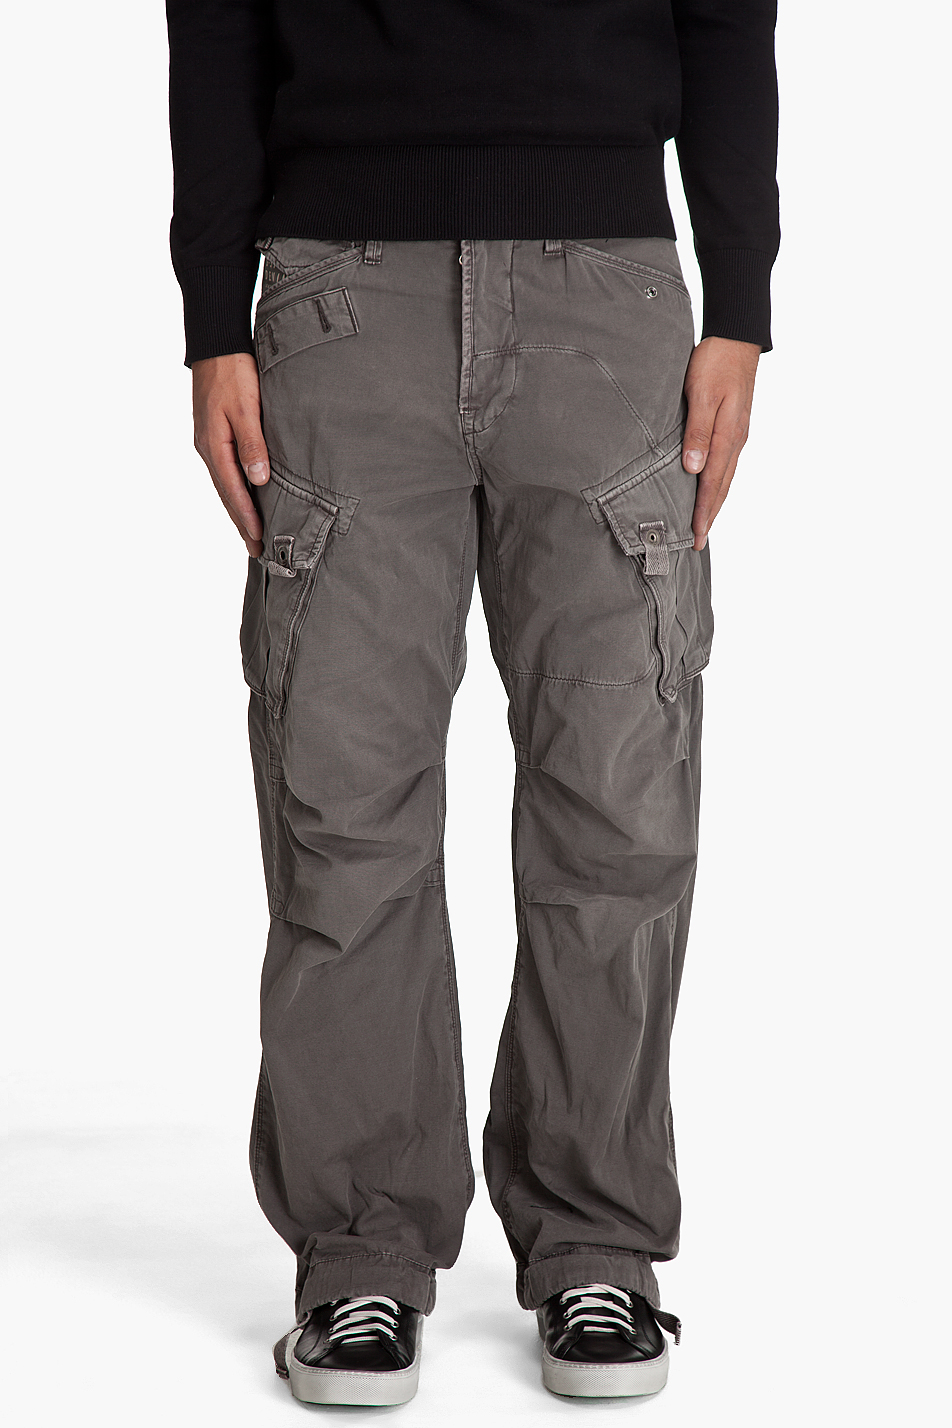 G Star Raw Rovic Loose Cargo Pants In Brown For Men Lyst